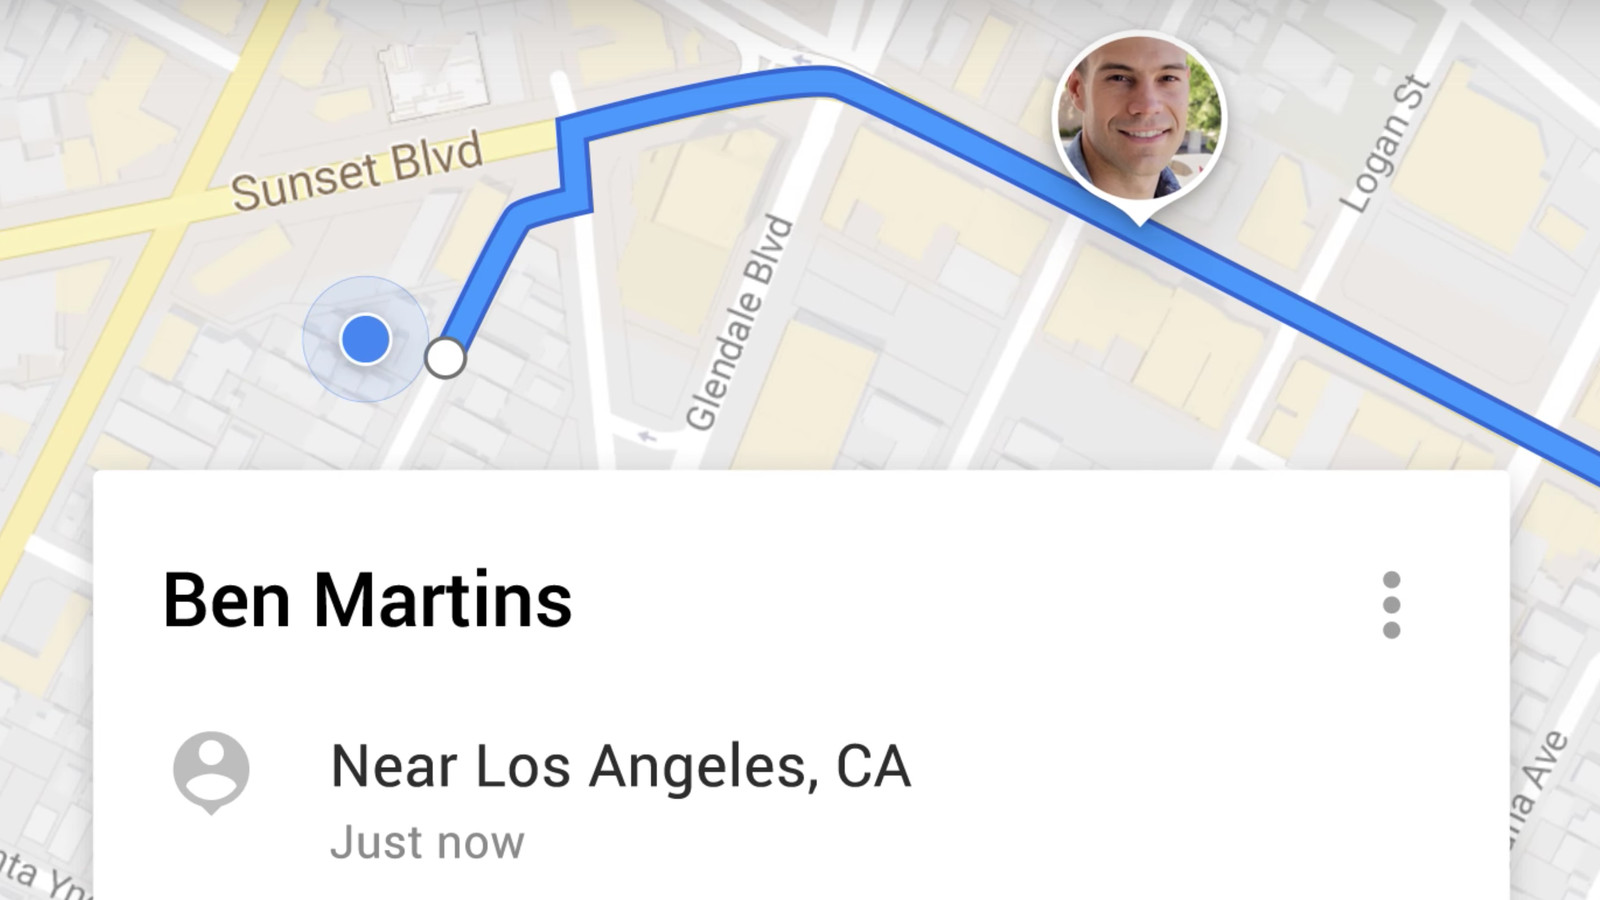 Google Maps can now temporarily share your real-time location with